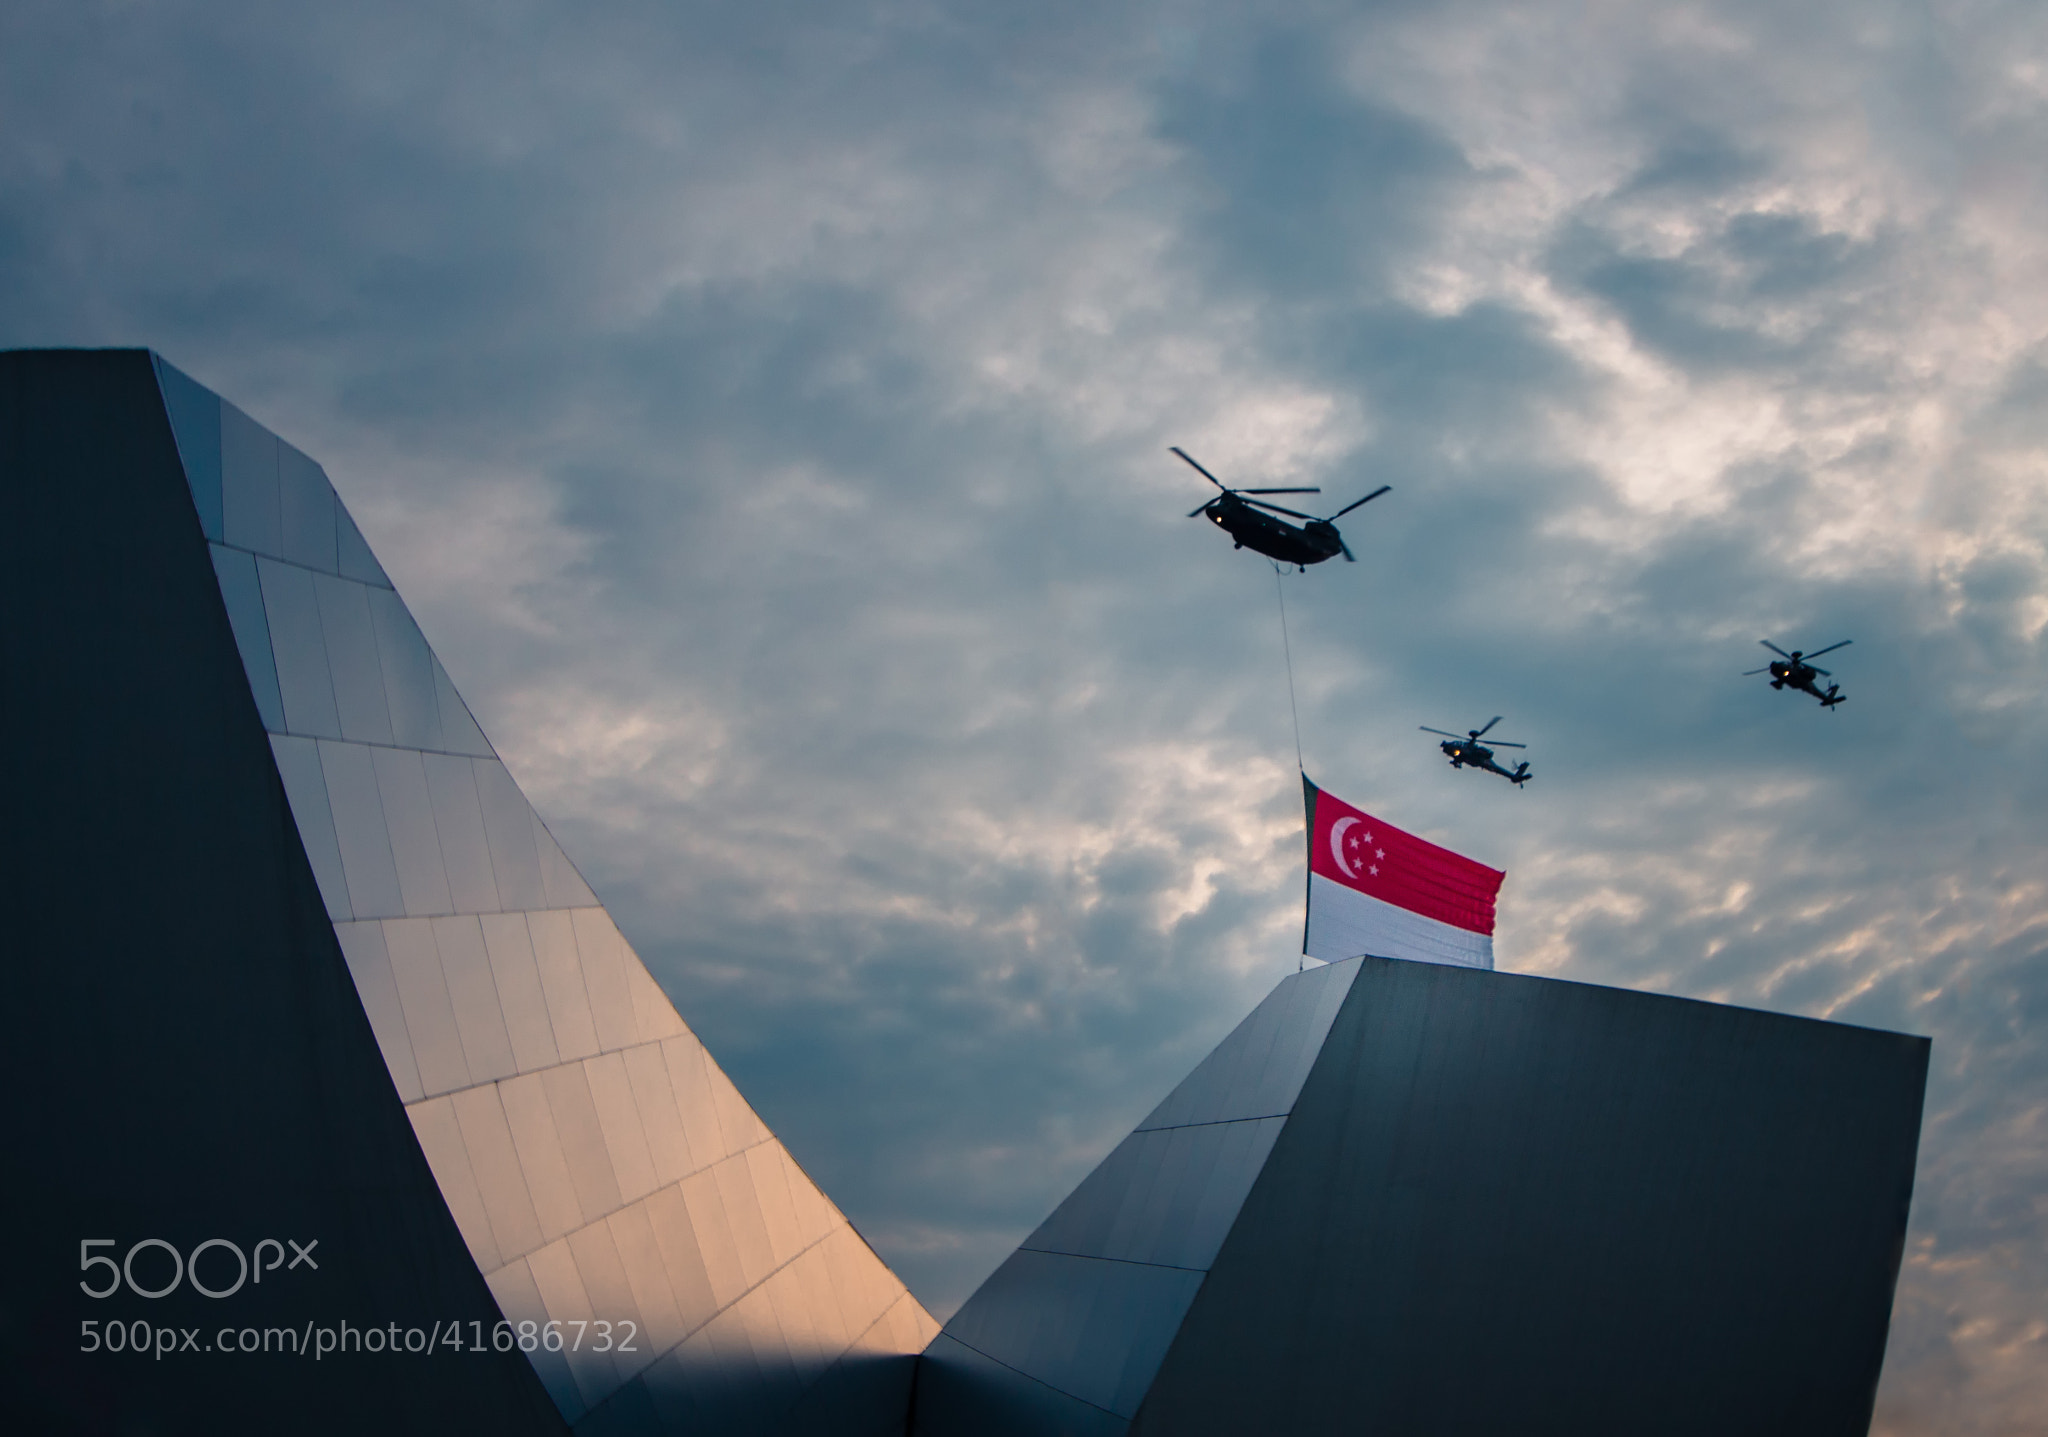 Photograph 2013-07-27 NDP Rehearsals Helicopters with Singapore Flag Flyover by Teelip Lim on 500px